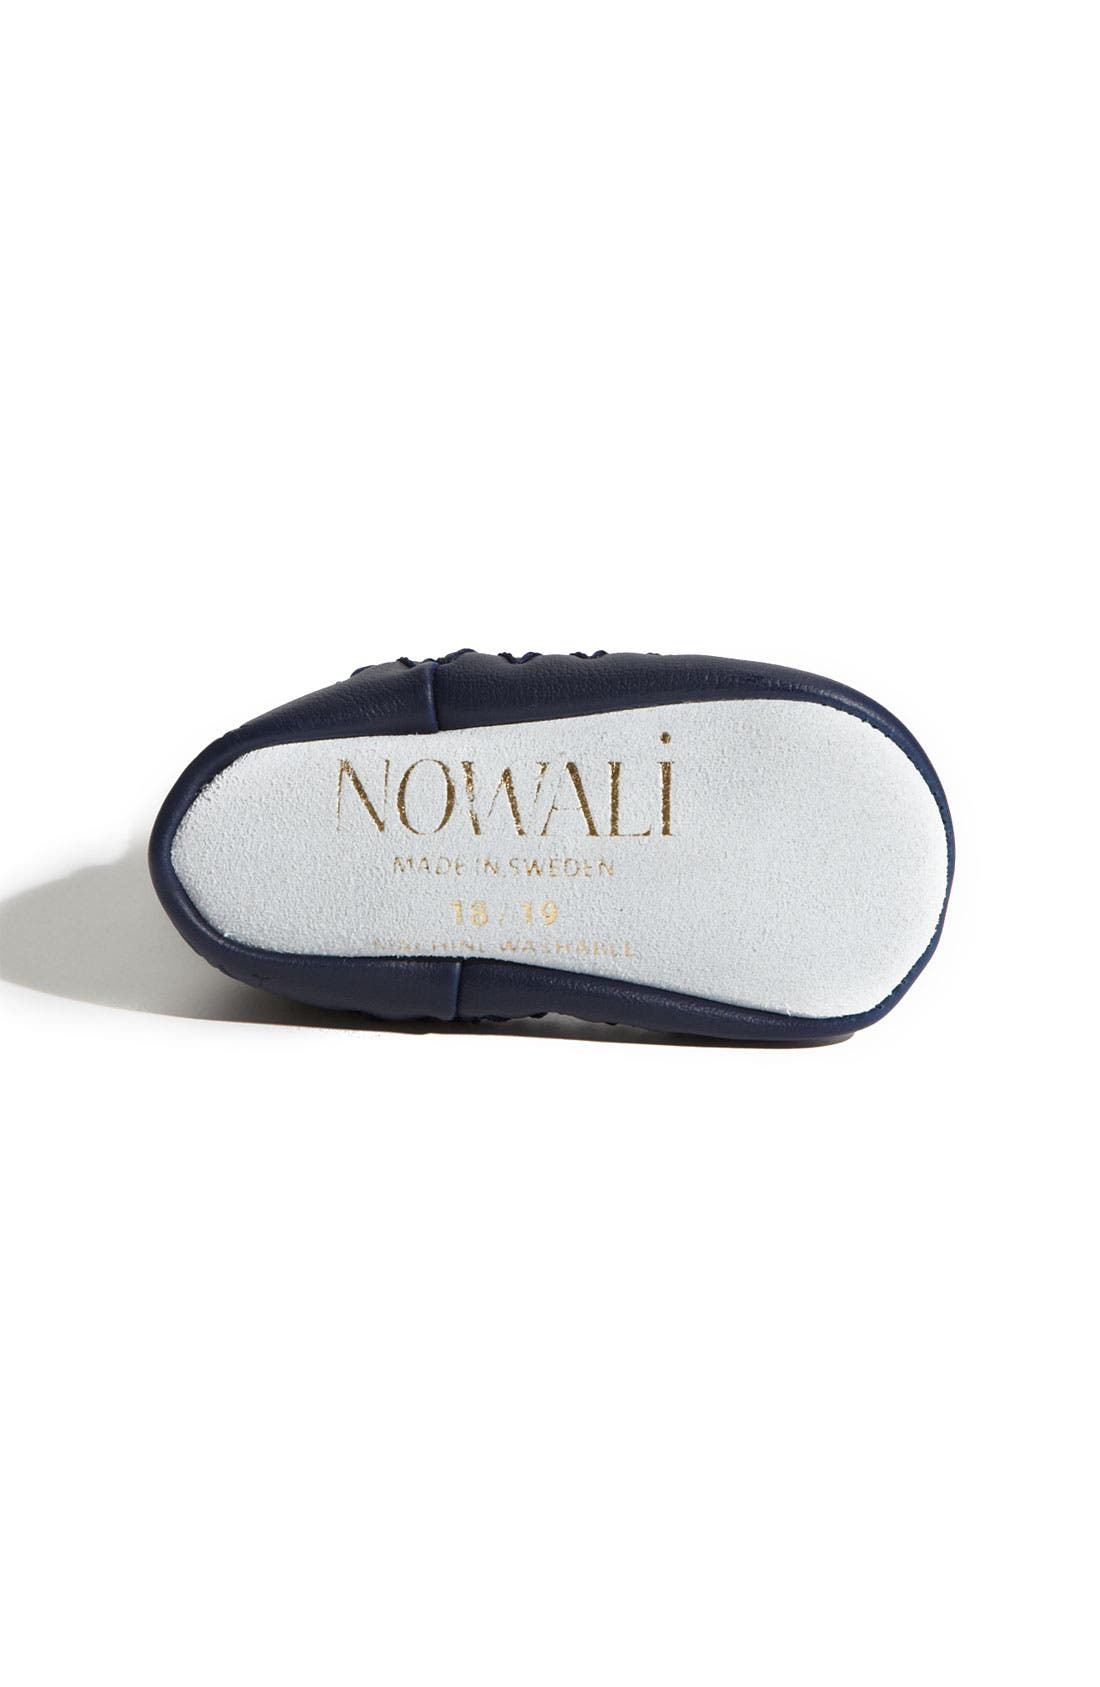 Alternate Image 4  - Nowali Cable Knit Moccasins (Baby & Walker)